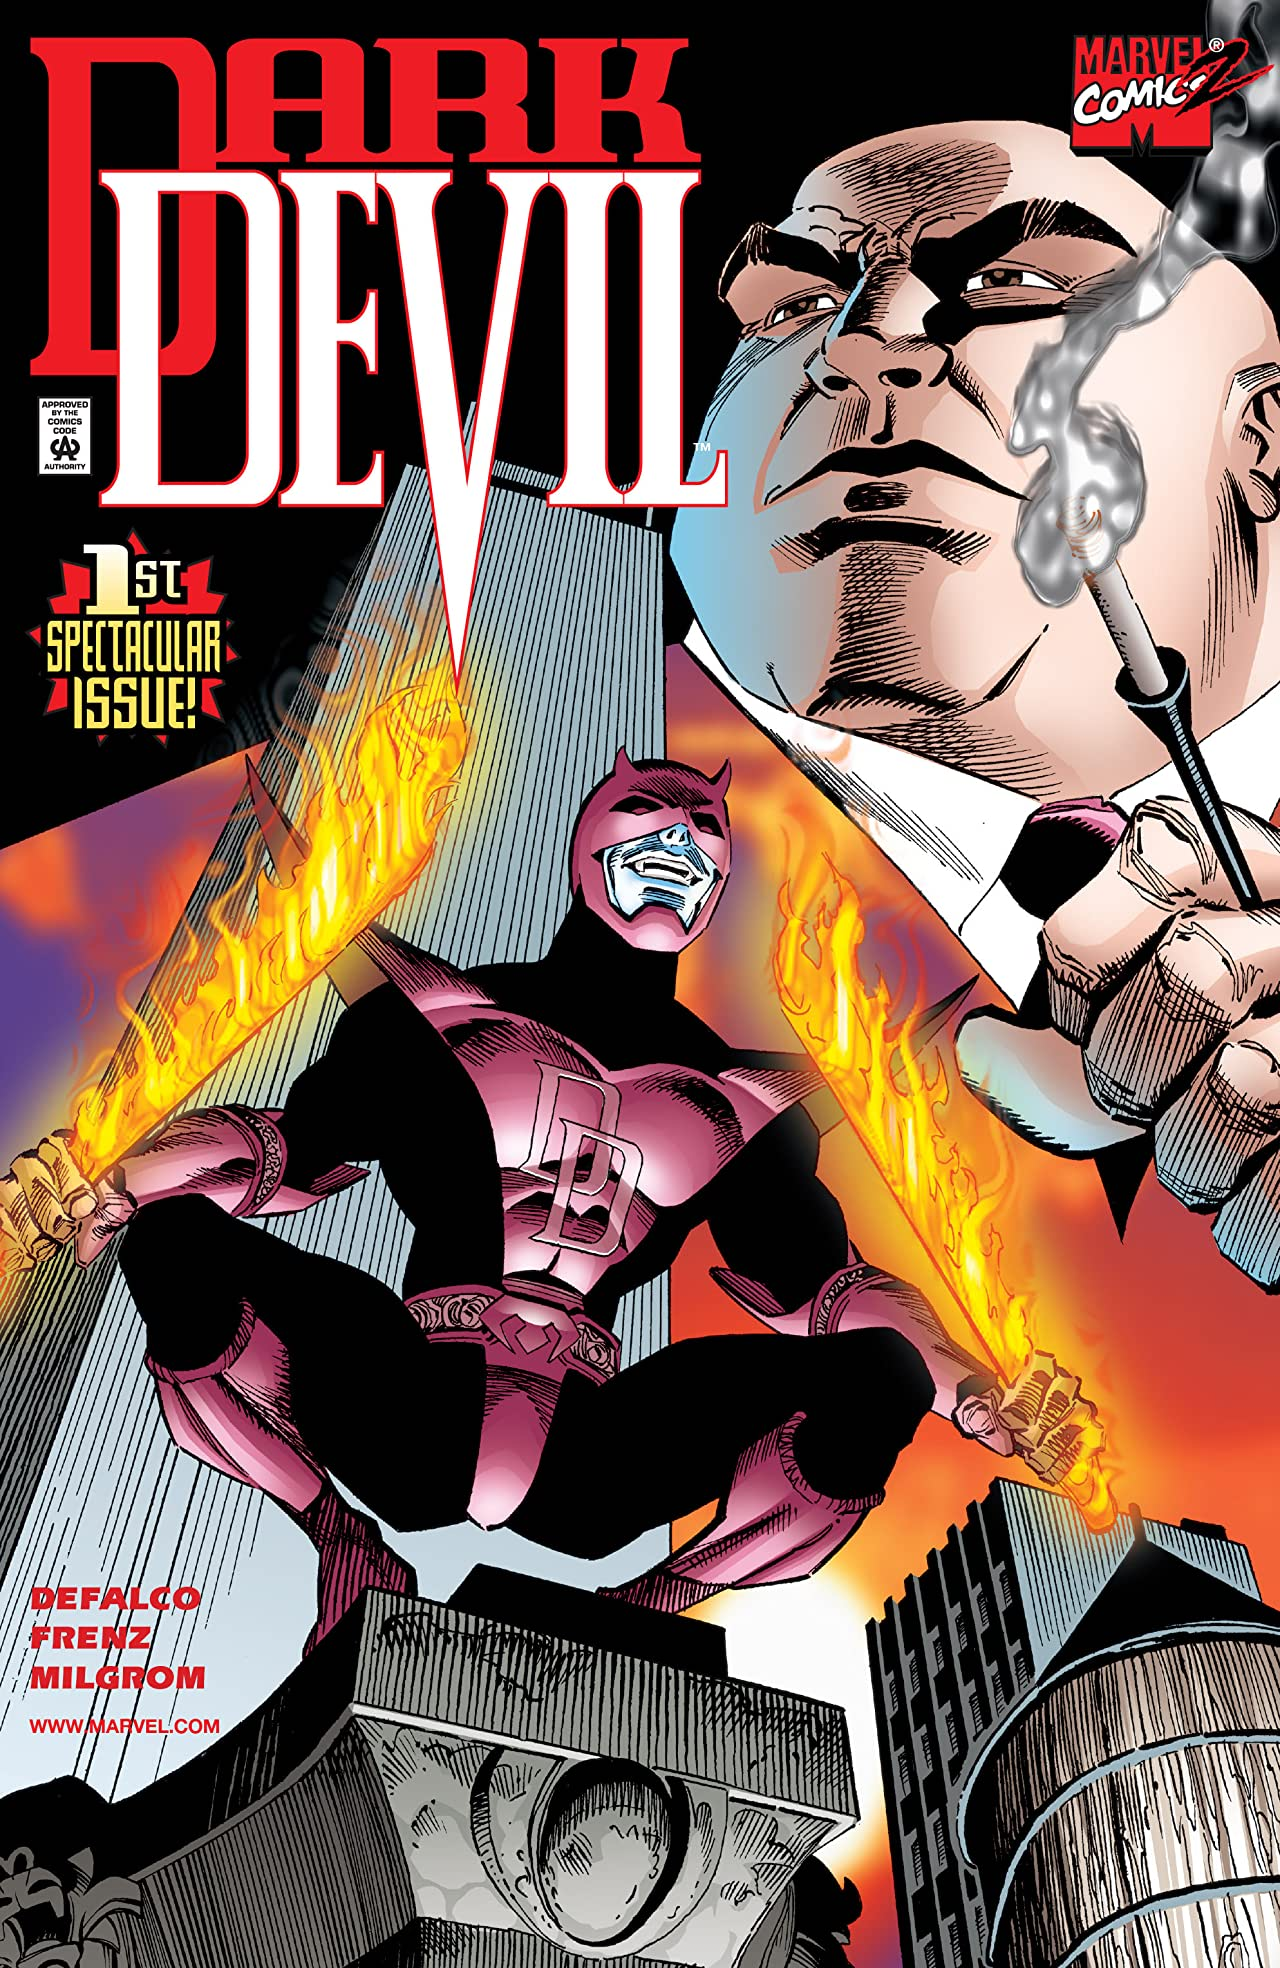 Darkdevil (2000) #1 (of 3)